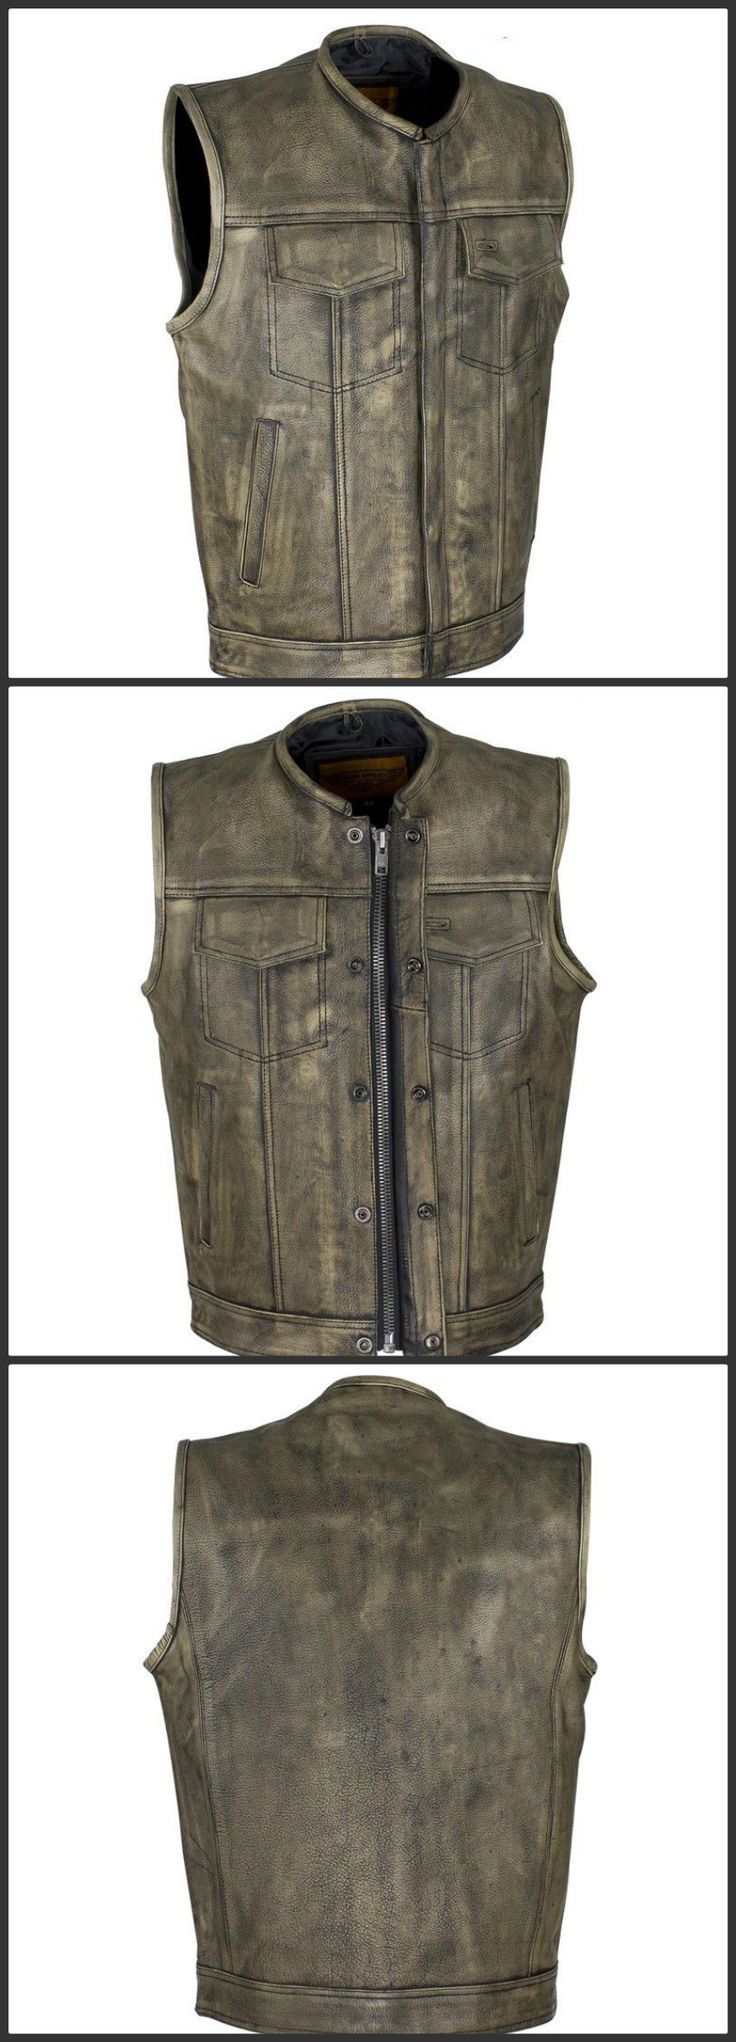 Latest edition in men's vest SOA Style Distressed Brown Biker Vest for Men now in SK Fashion Store. This newly outfit is best suits for summer holidays. Collect your one SOA Club Style Biker Motorcycle Leather Vest.